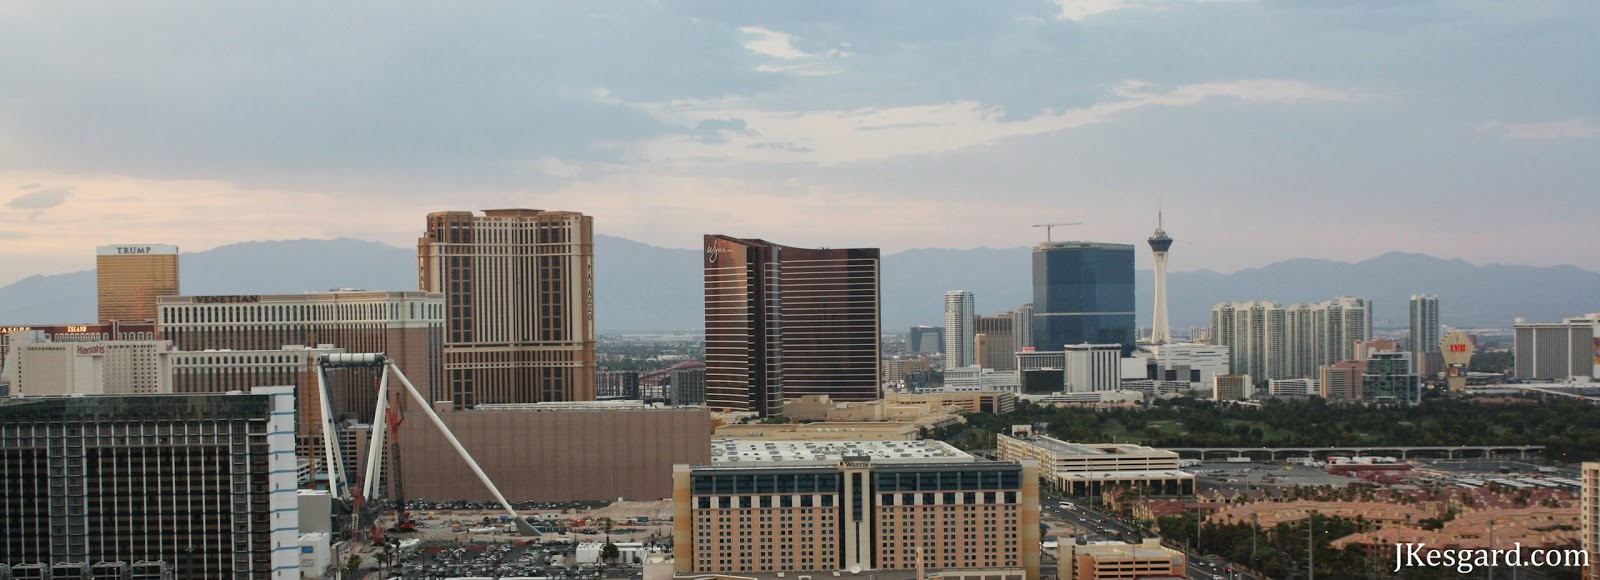 las Vegas from the east during July 2013 wildfires